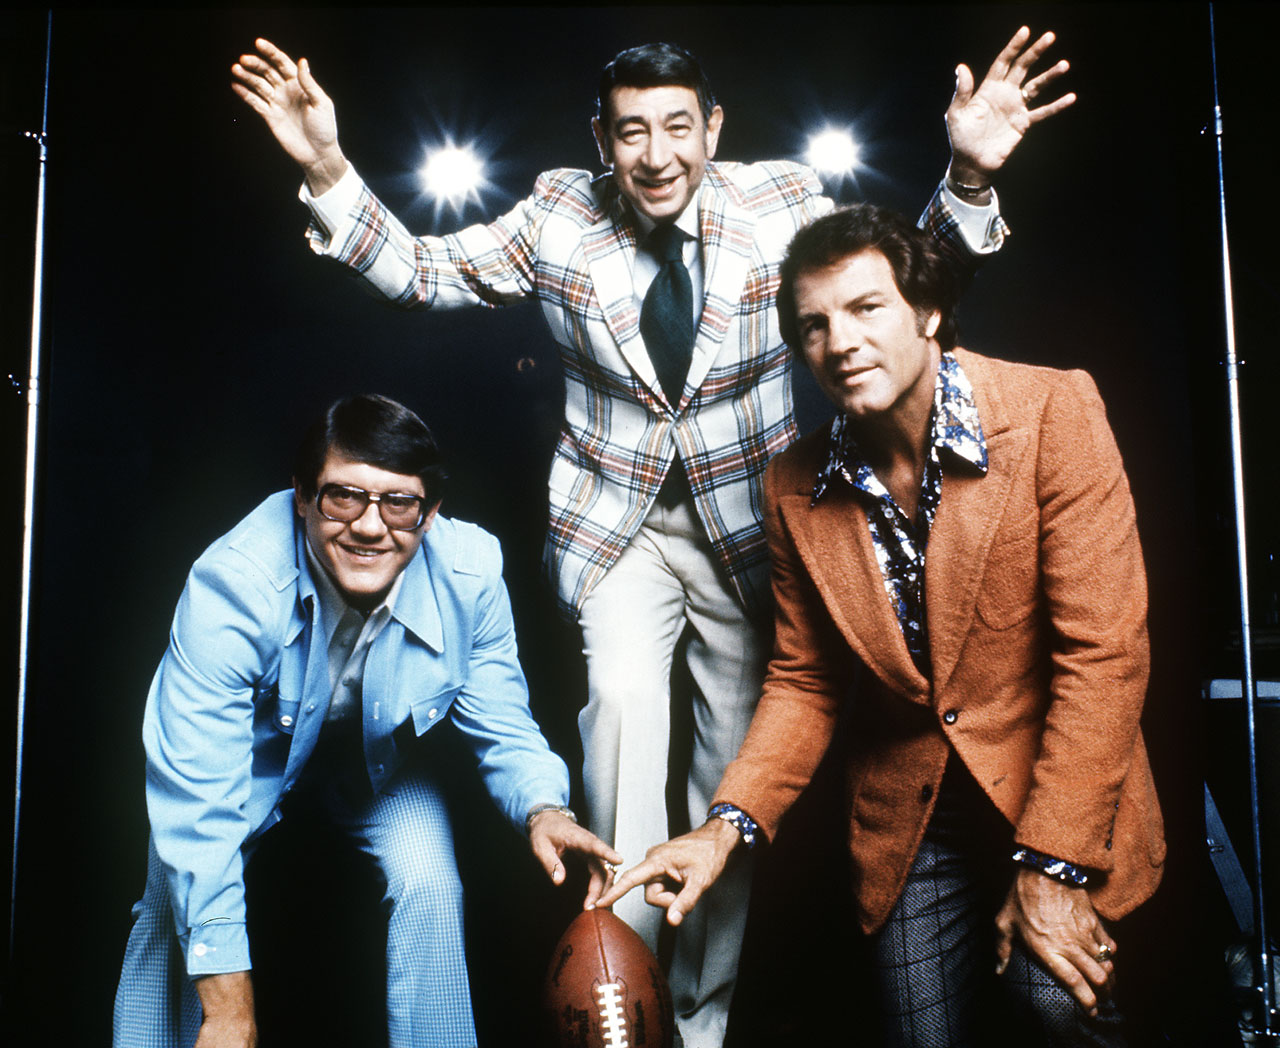 NFL commentators Alex Karras, Howard Cosell and Frank Gifford in 1975.